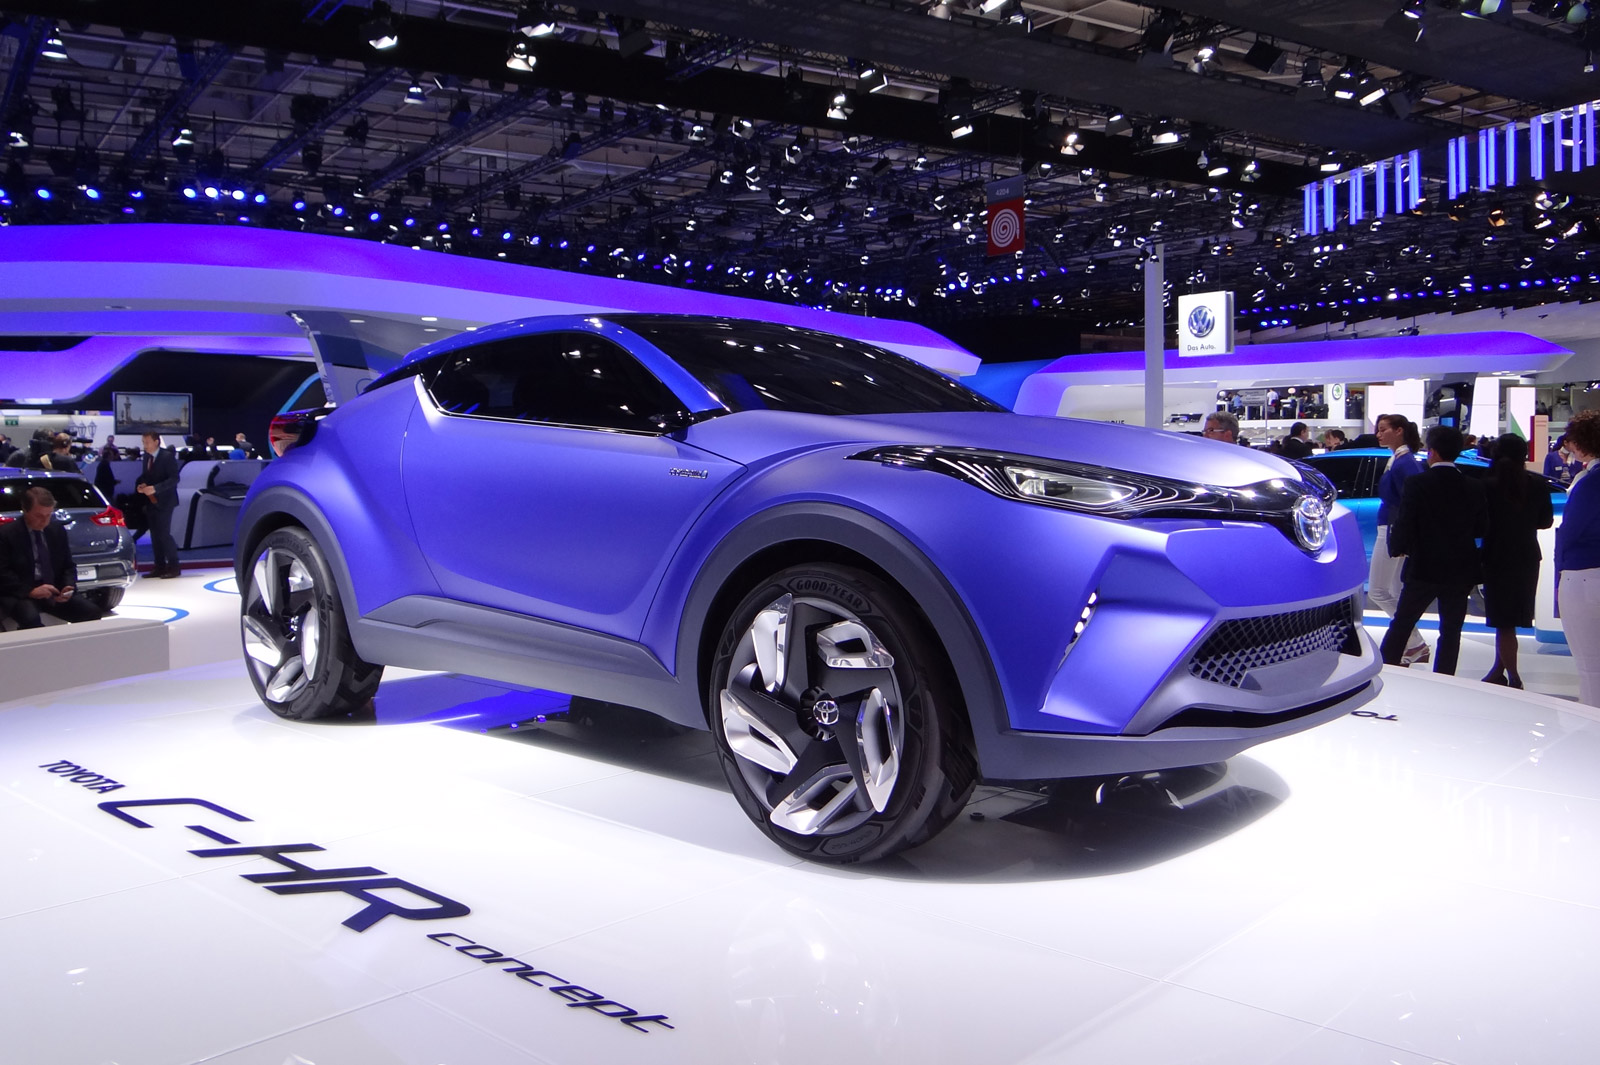 Toyota C-HR concept previews future subcompact SUV